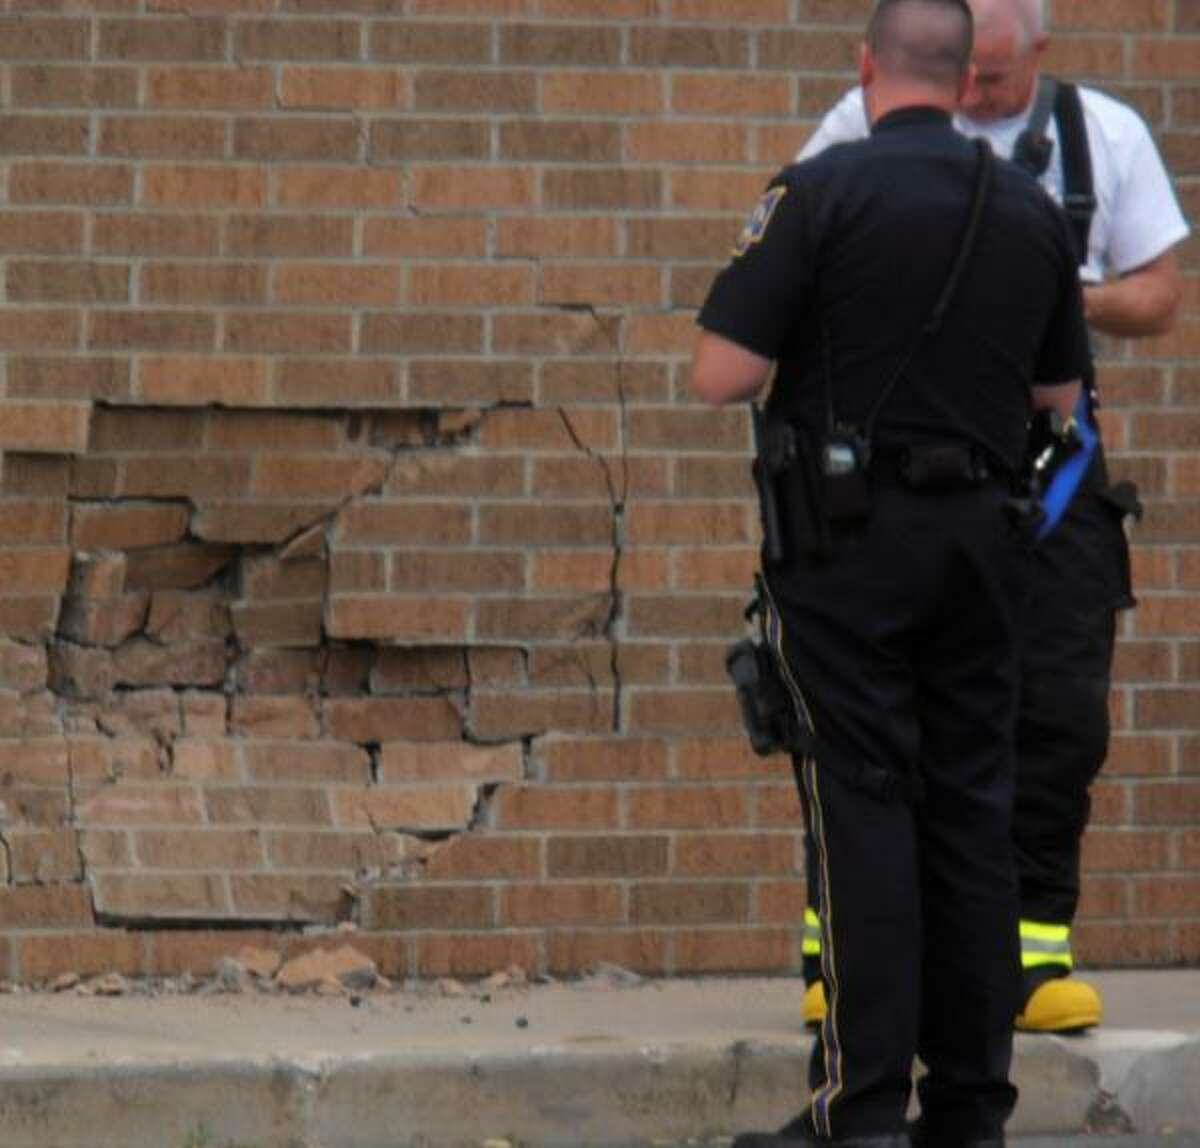 Submitted photo. Torrington resident Kathleen Jasmin was at Aldi's at the time of the accident and snapped this photo of the wall after it was hit.